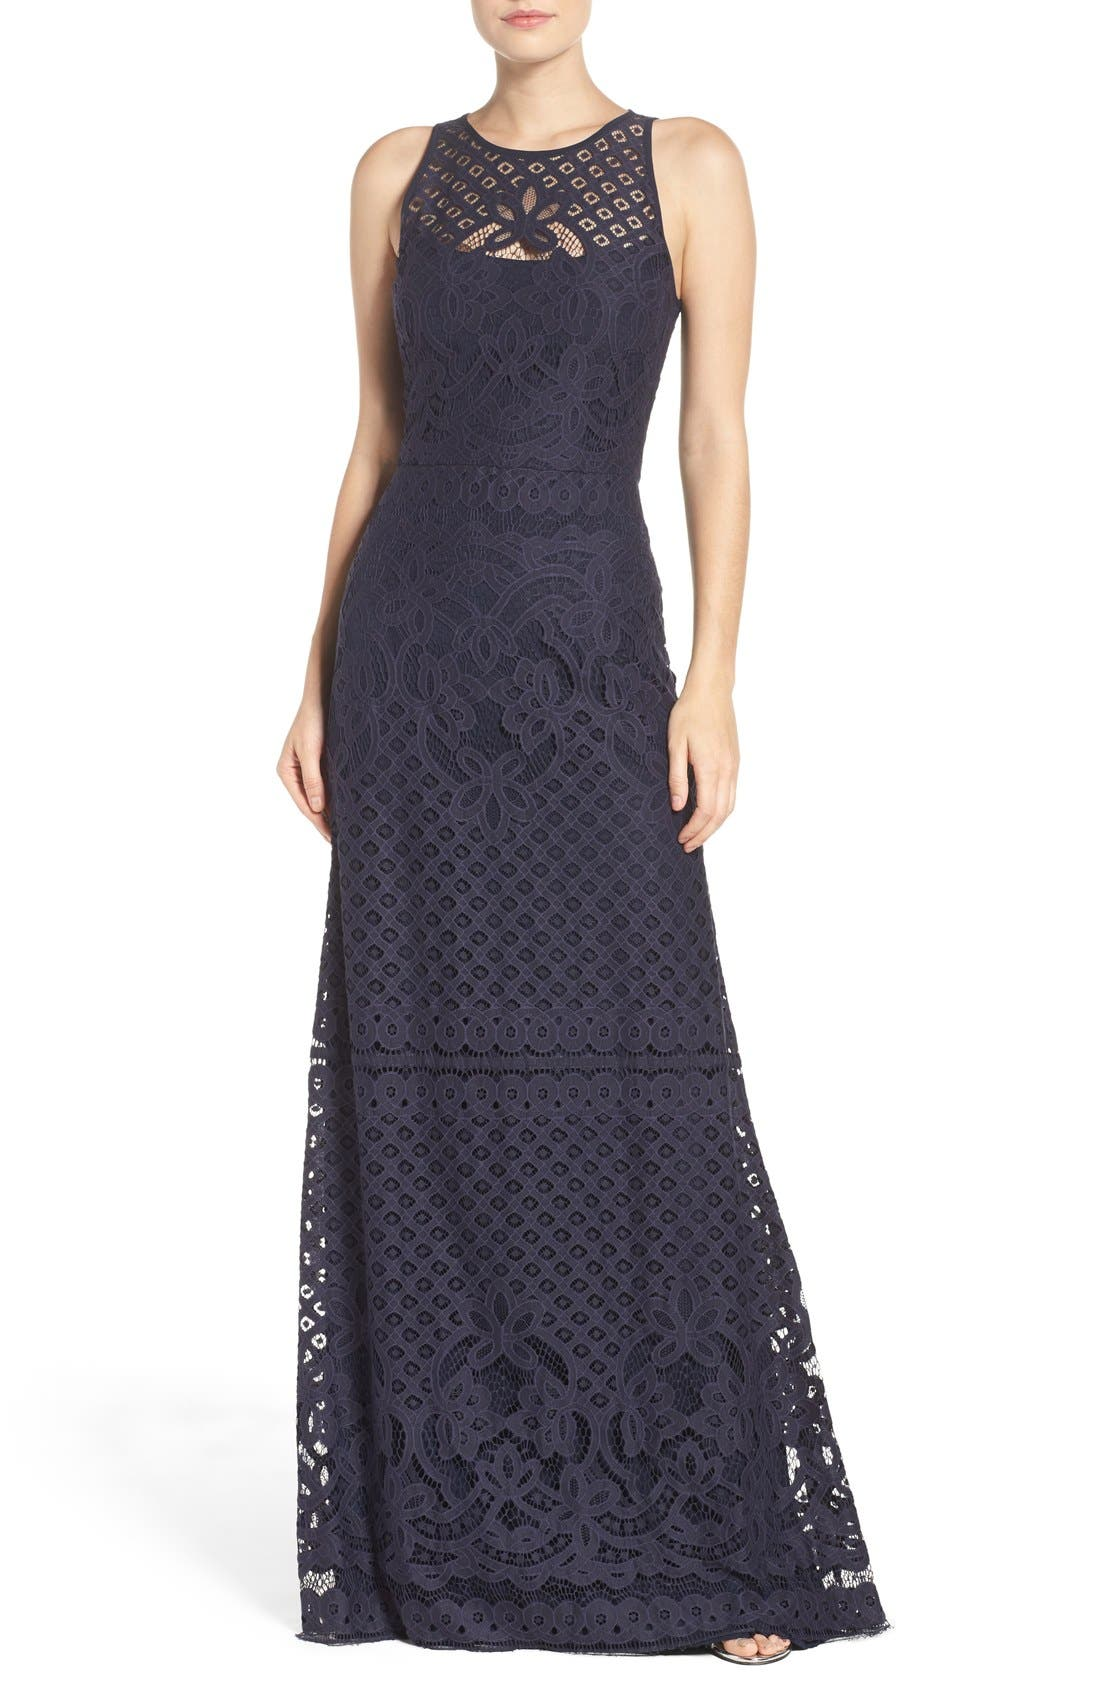 Alternate Image 1 Selected - Vera Wang Illusion Yoke Lace Maxi Dress